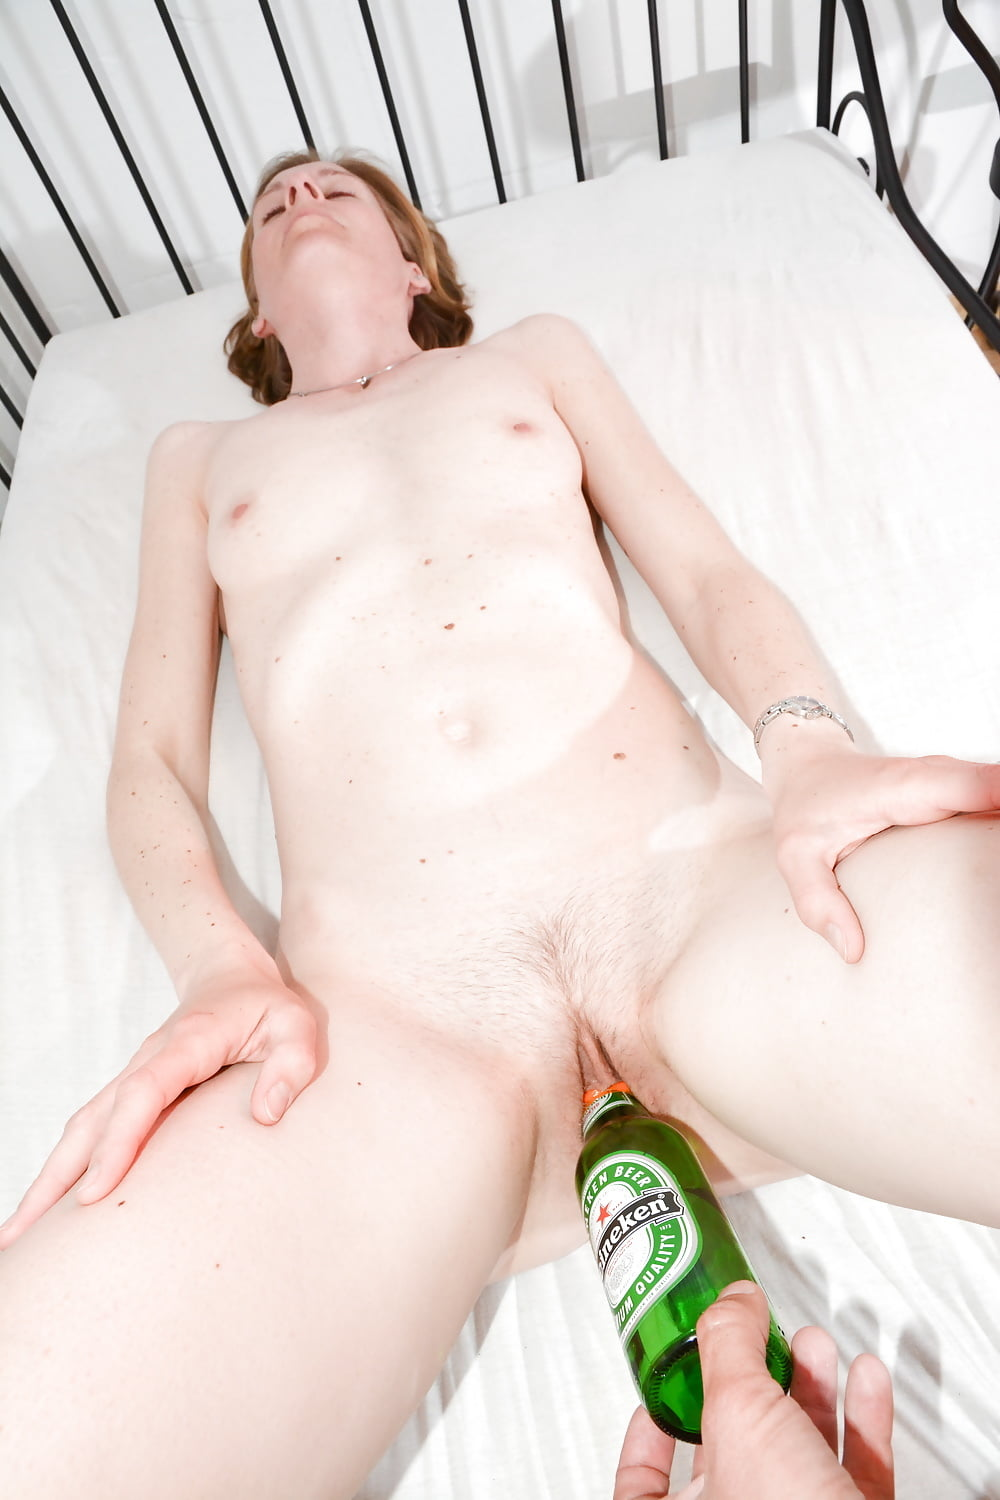 Teen riding bottle in pussy — pic 15